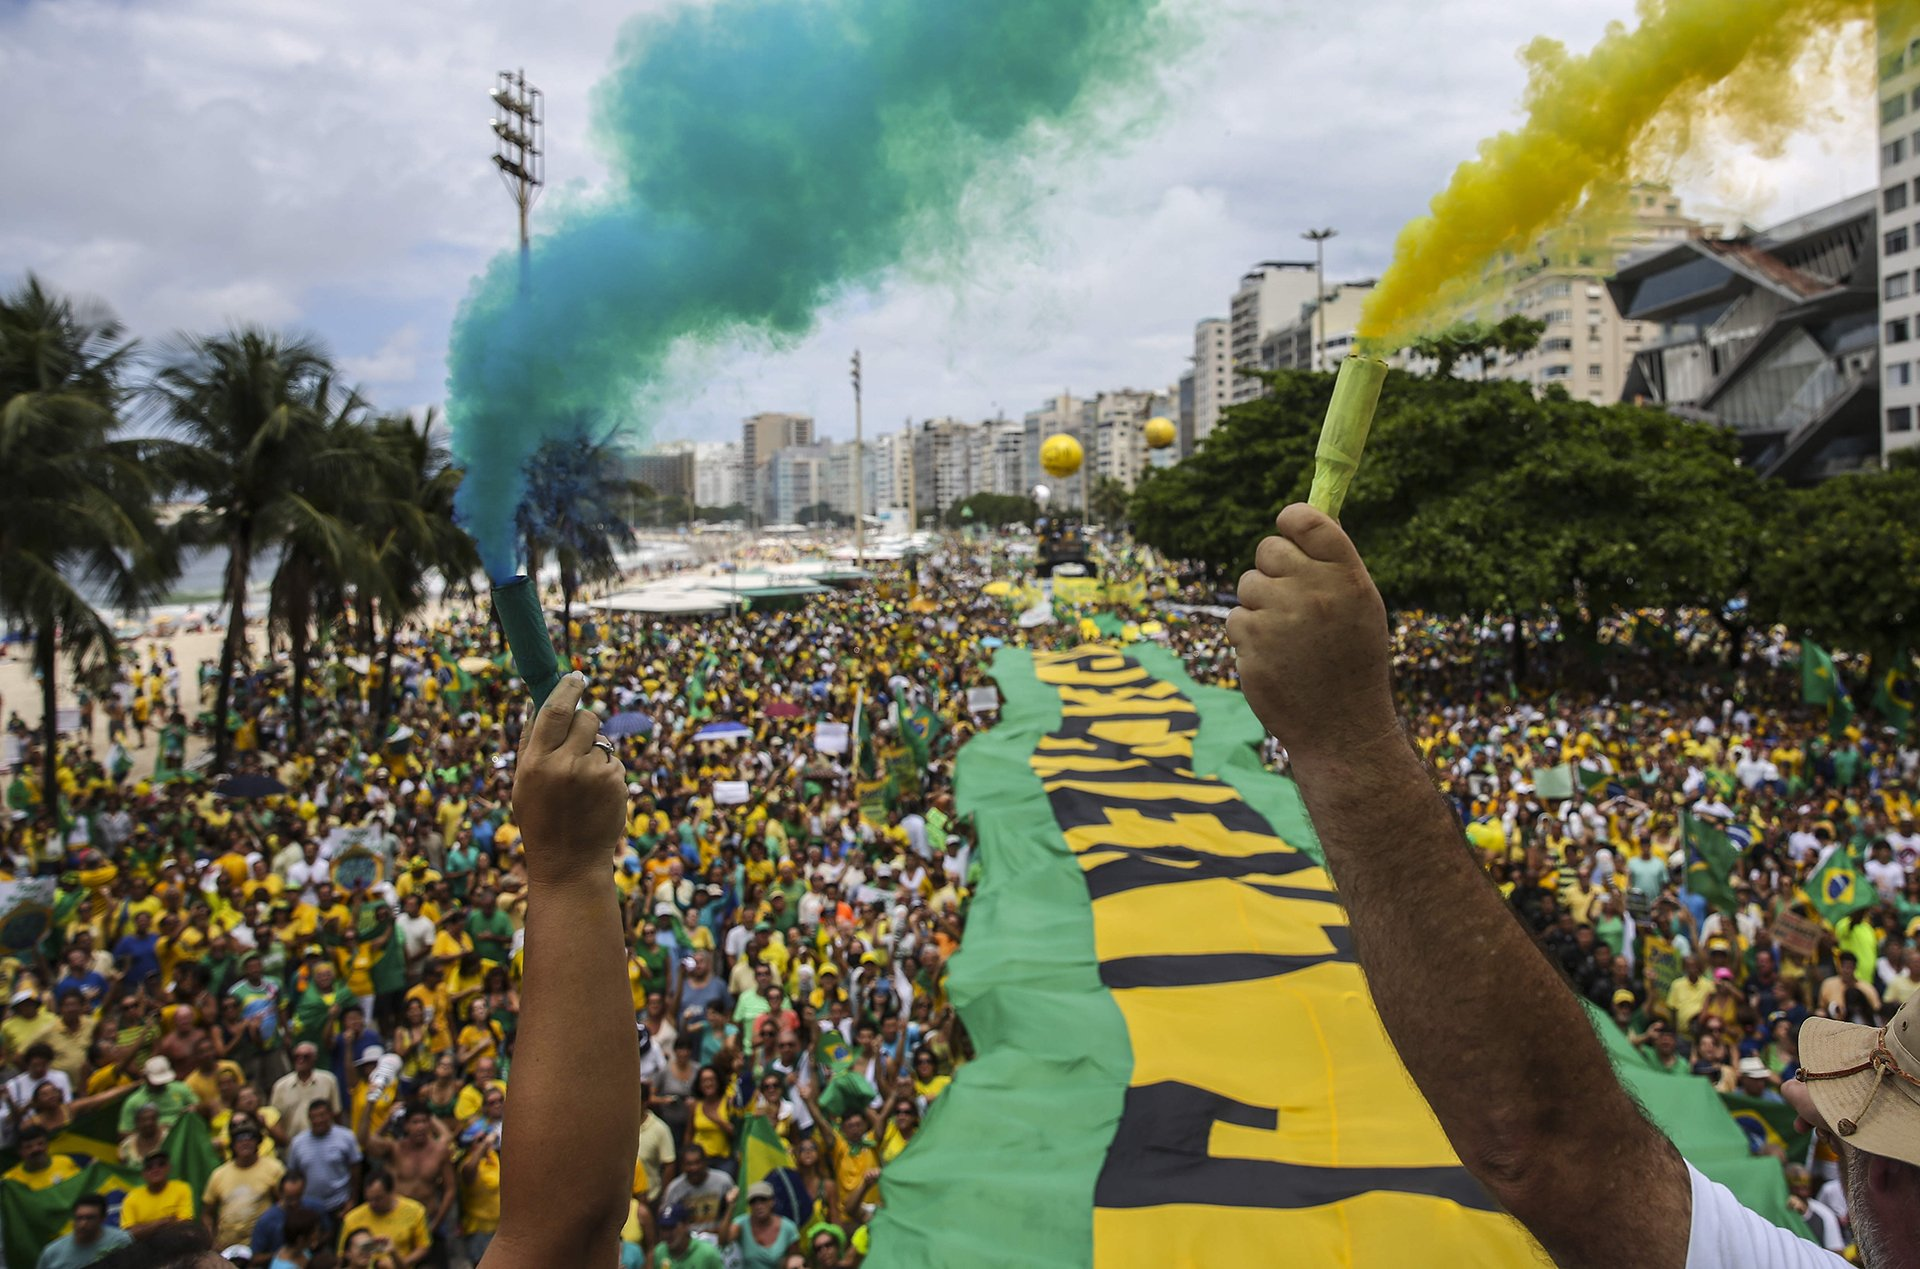 marcha brasil contra lula y dilma rousseff (9)